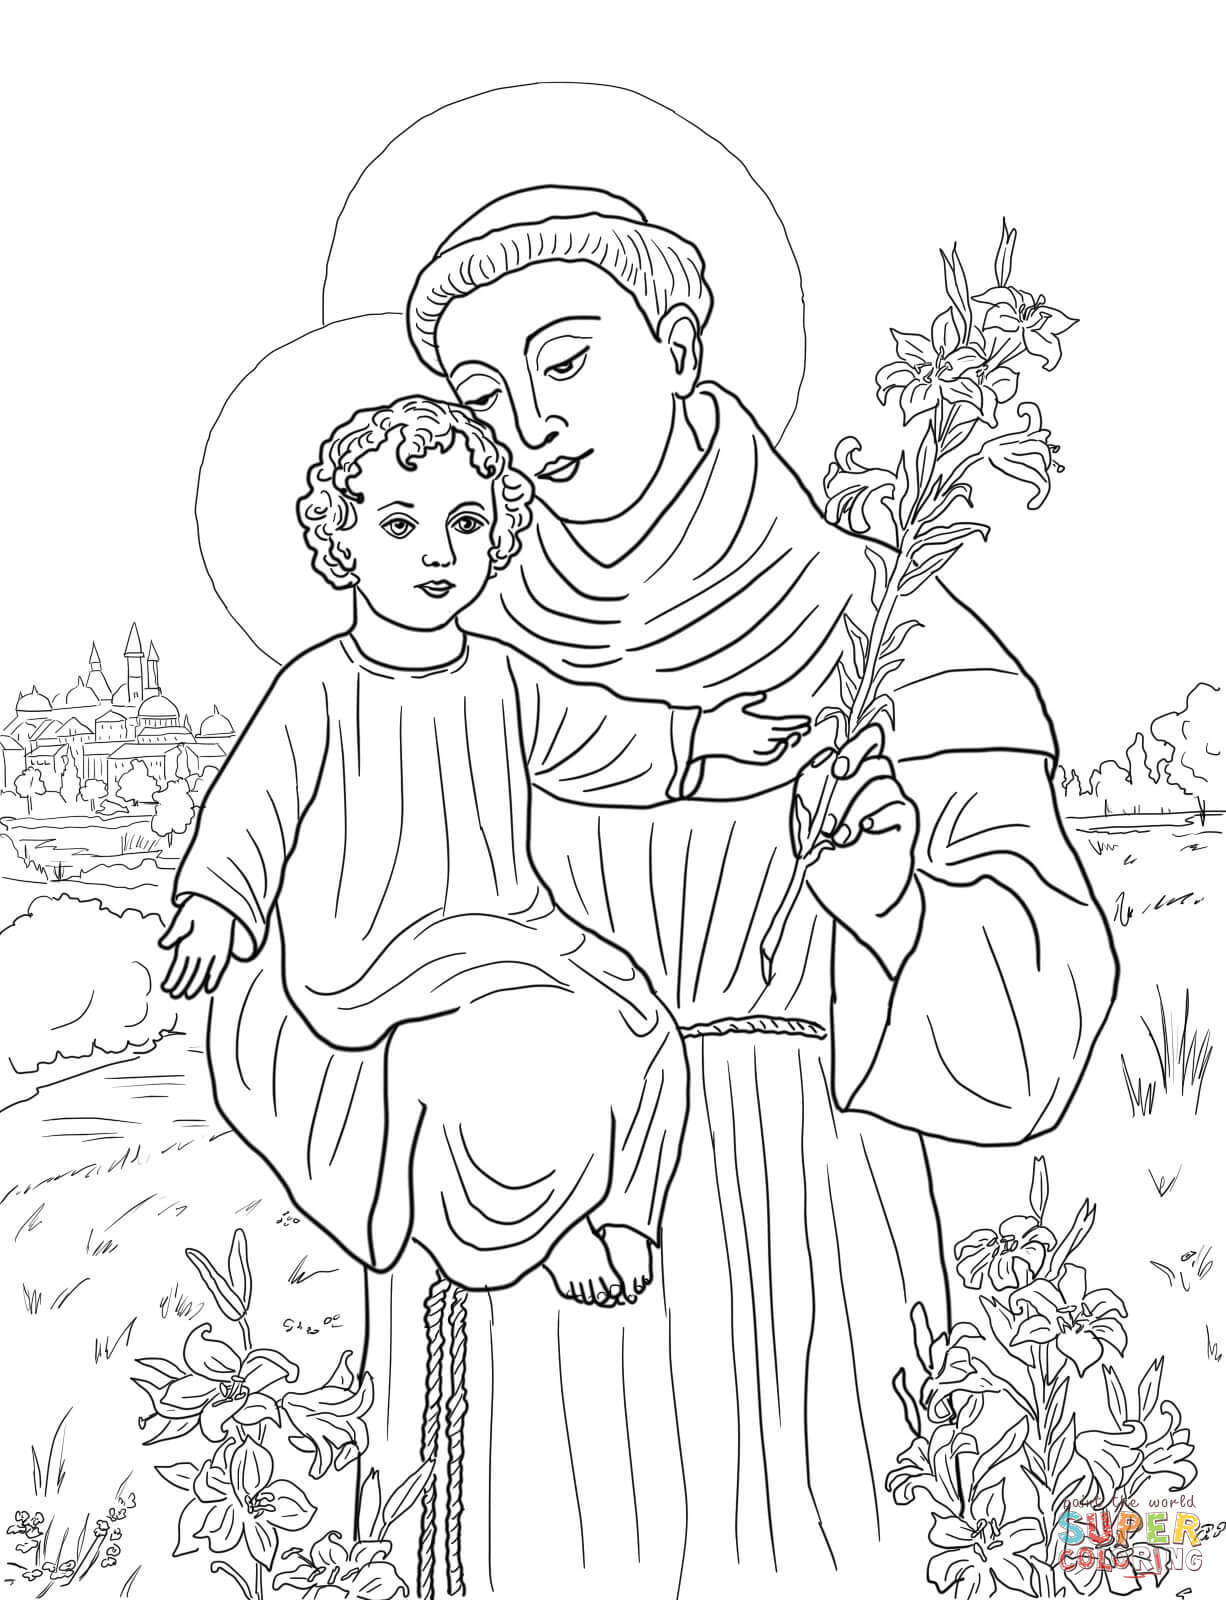 St. Anthony of Padua coloring page.